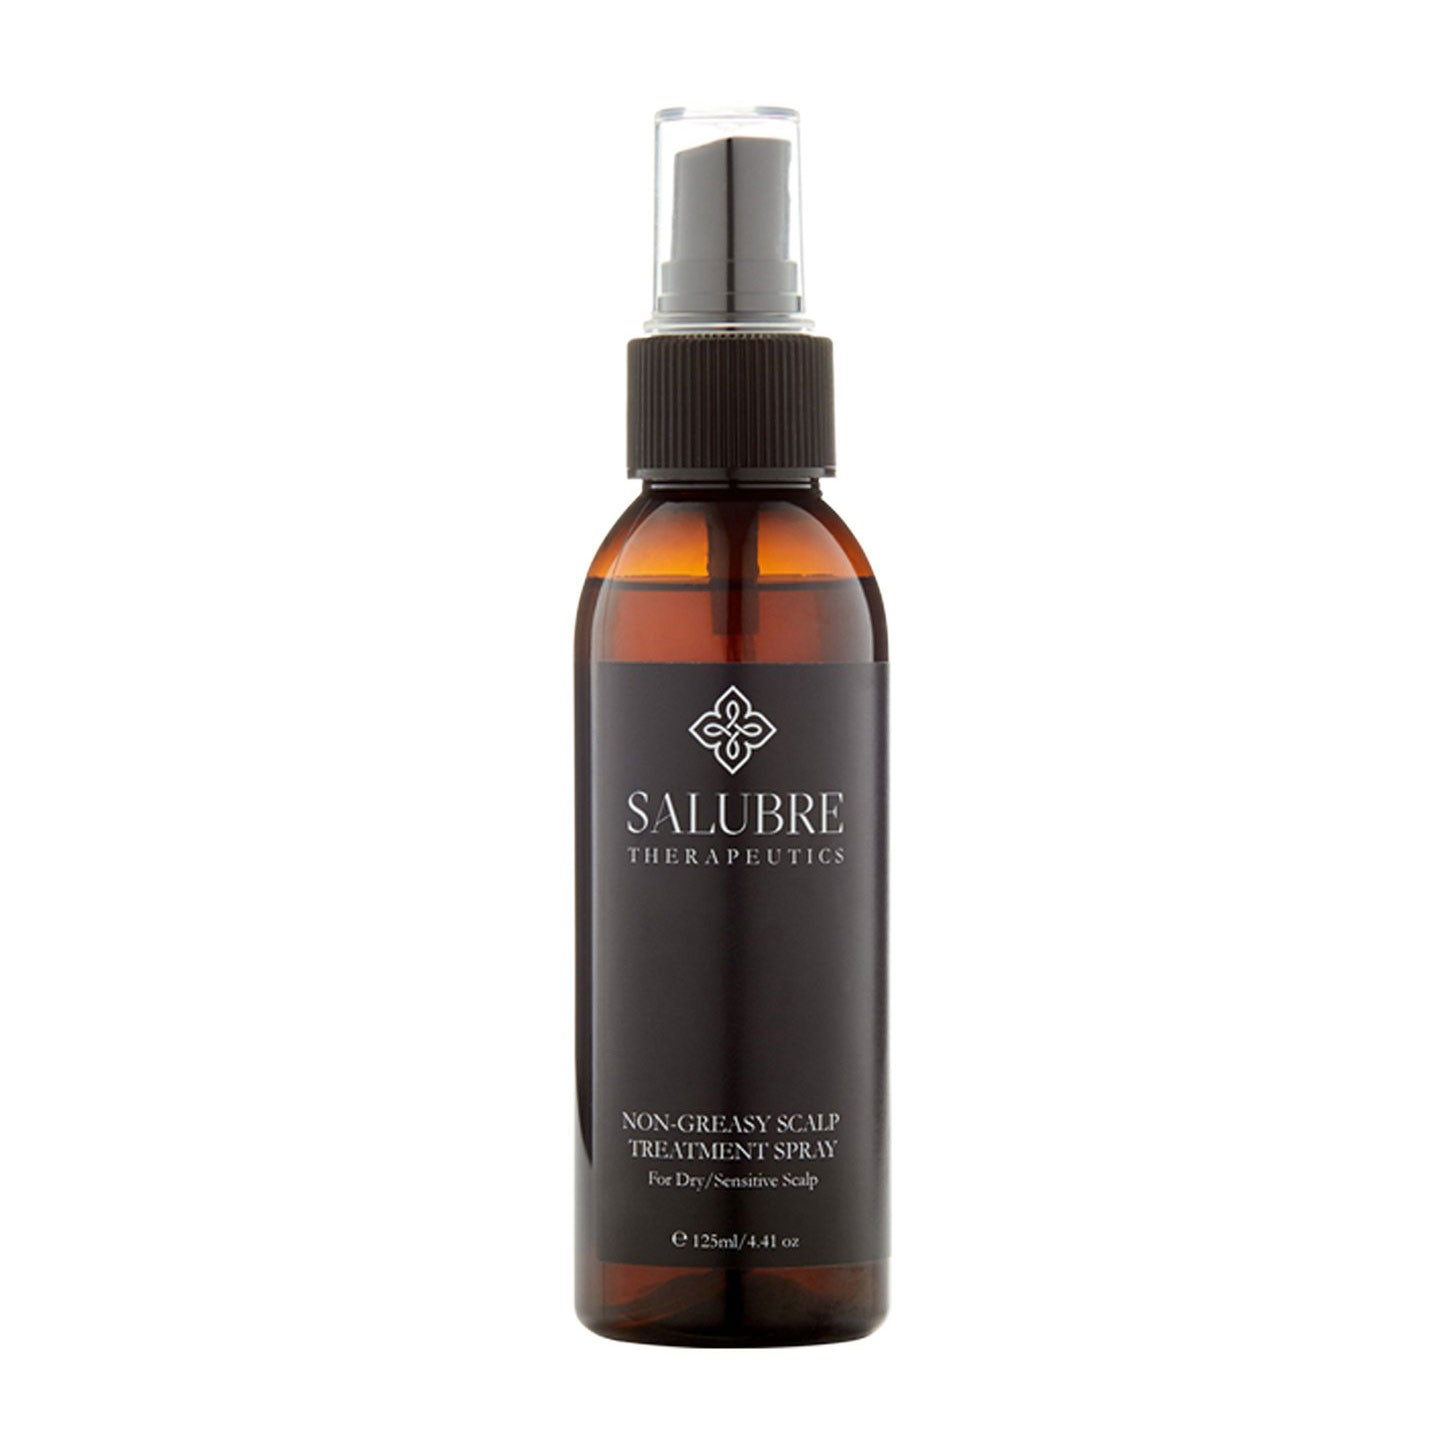 Non-Greasy Scalp Treatment Spray